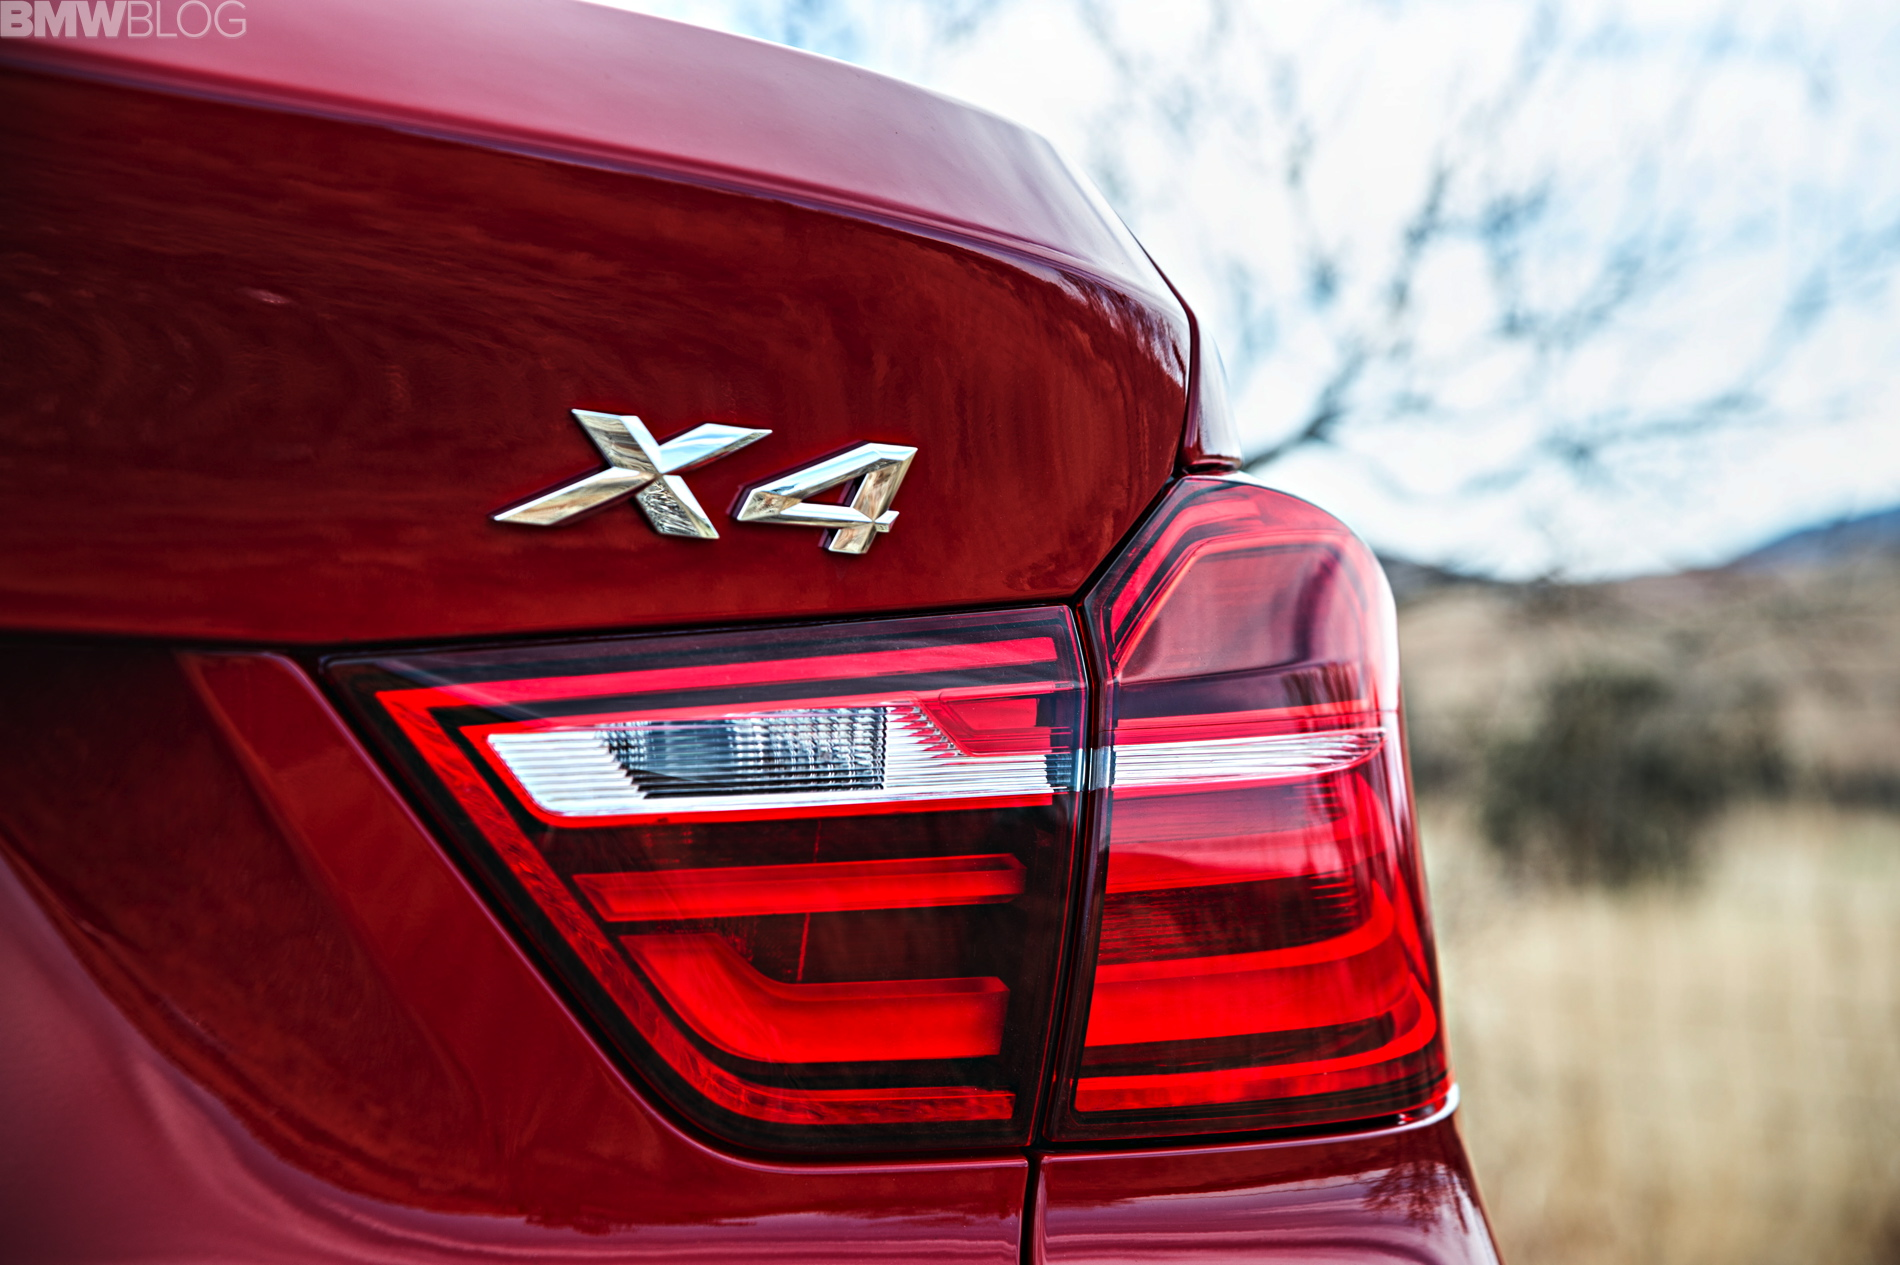 new bmw x4 images 01